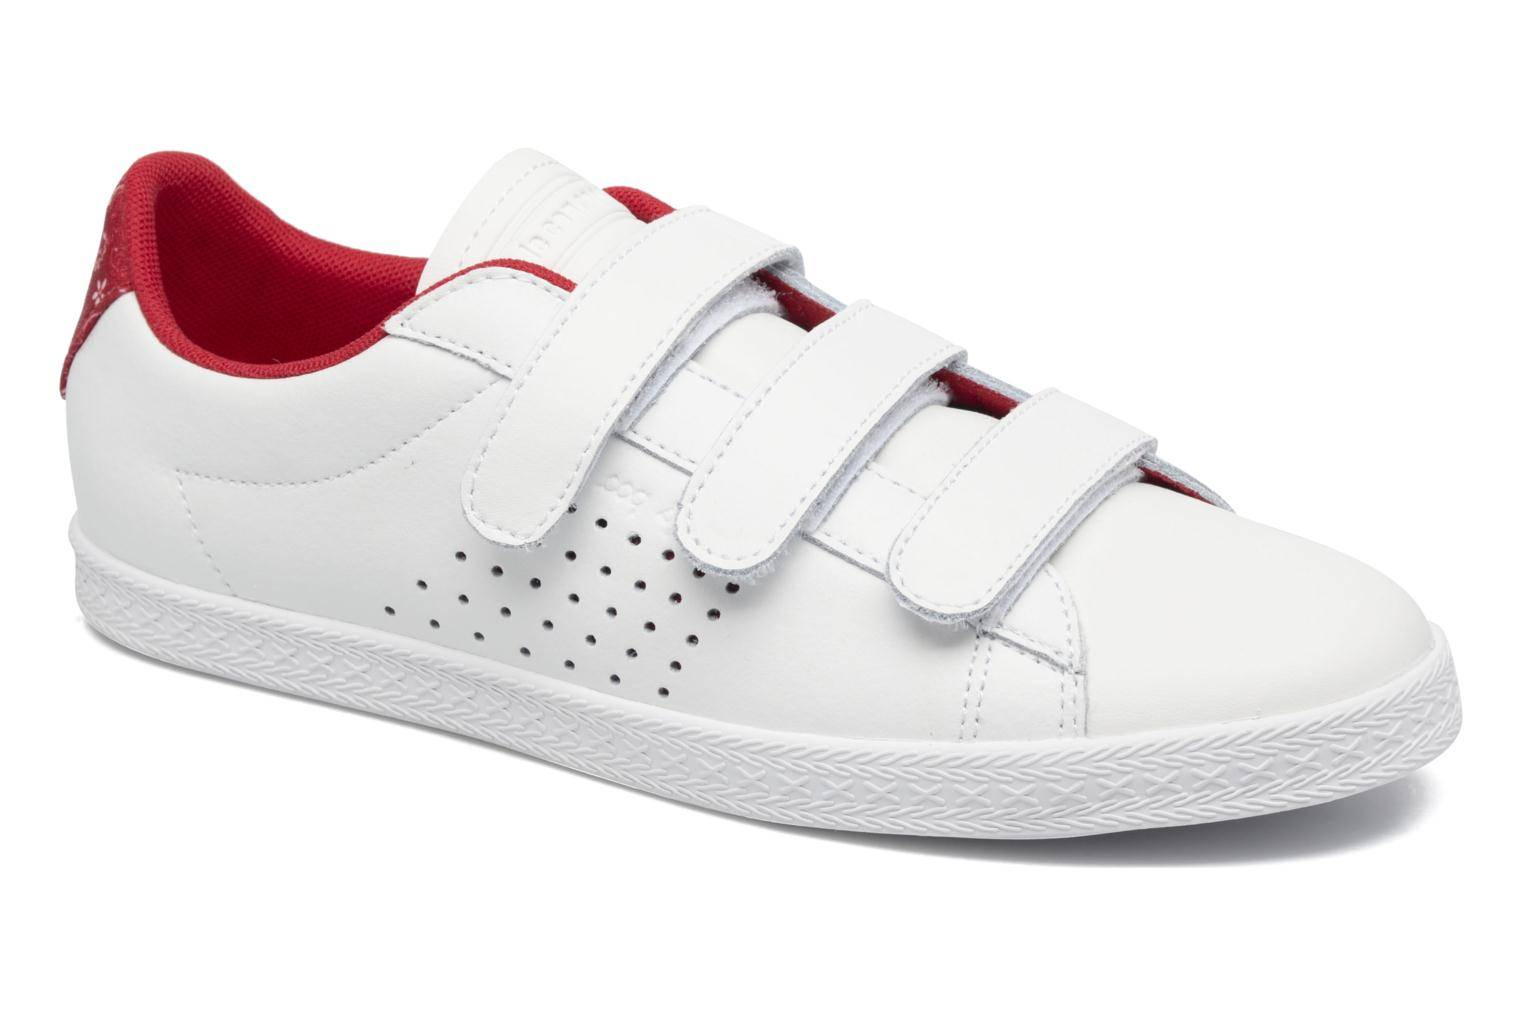 Le Coq Sportif - Charline Strap Streetwise by  - Tennarit Naisille  / Valkoinen